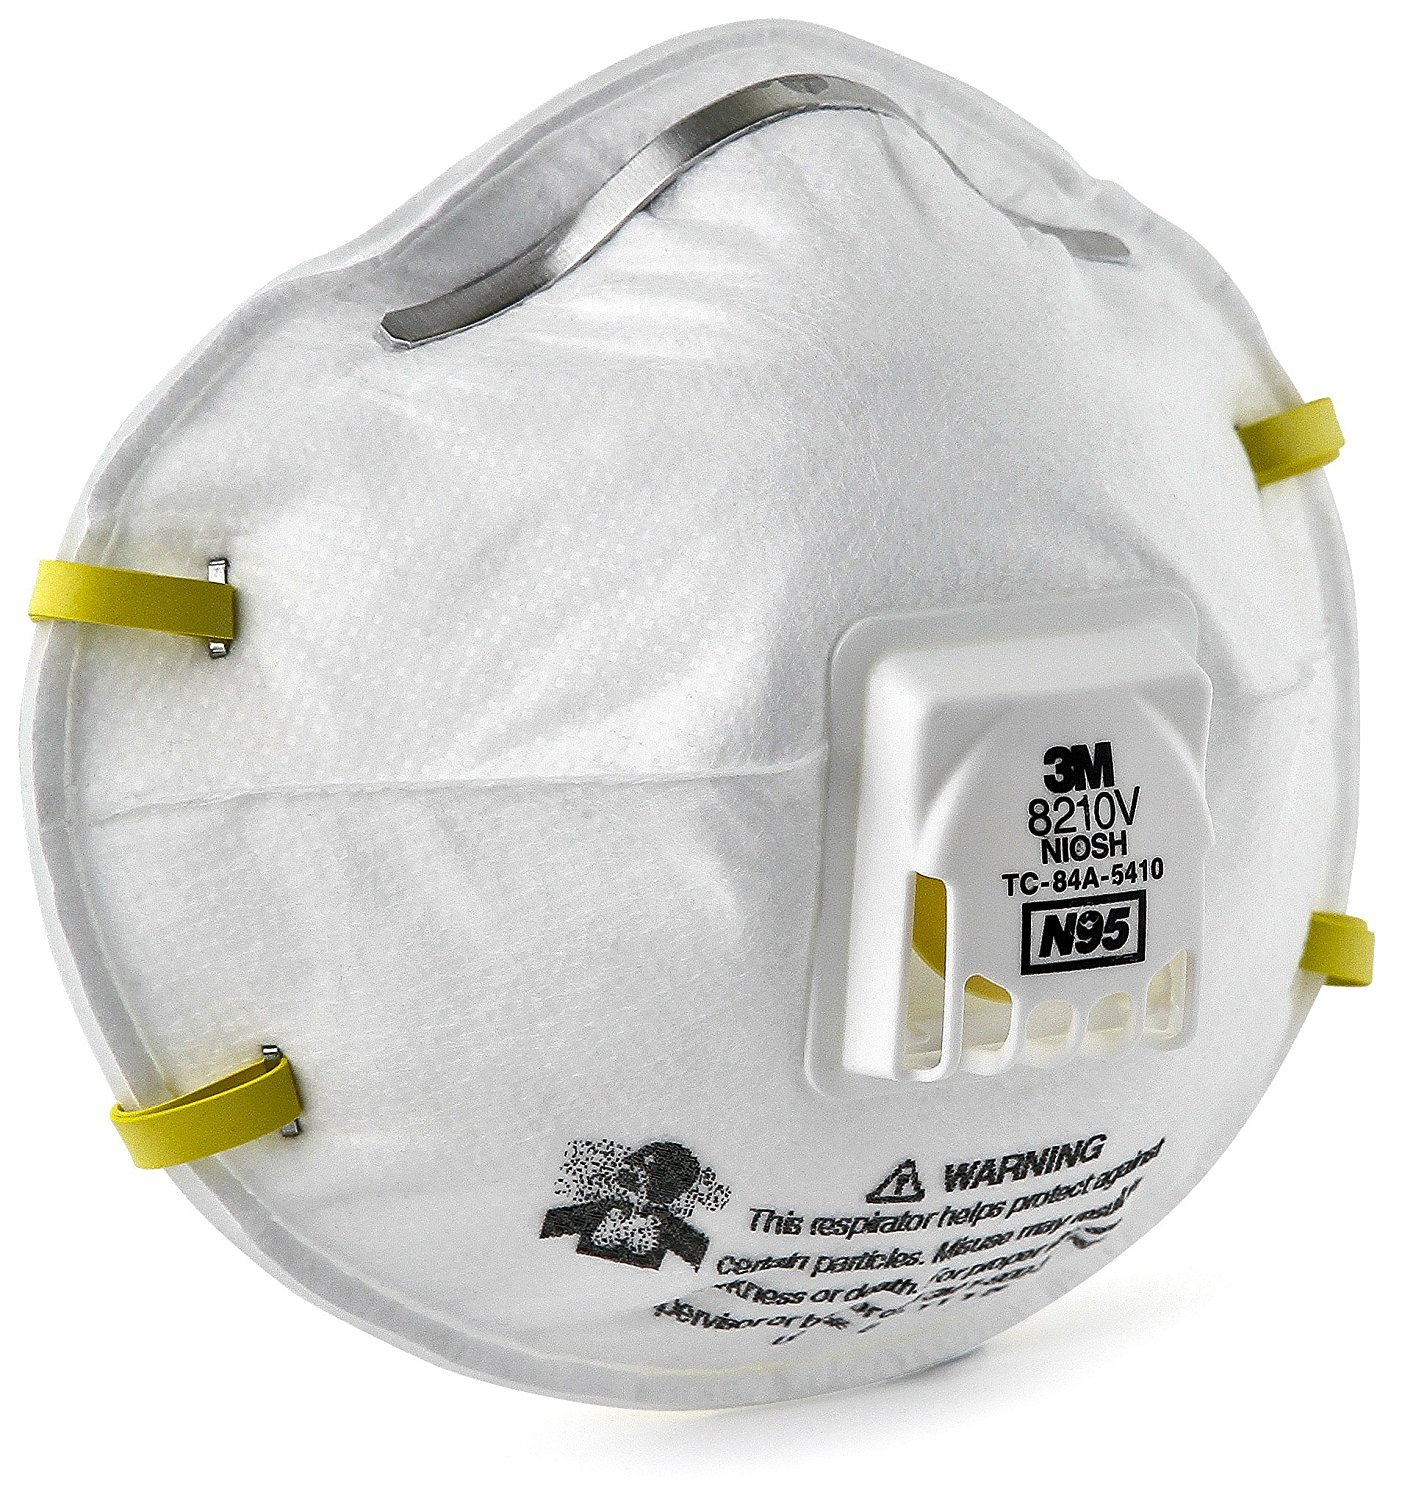 3M 8210V Particulate Respirator, N95 Exhalation Valve, Respiratory Protection, 100 Dust Masks (Case of 10)